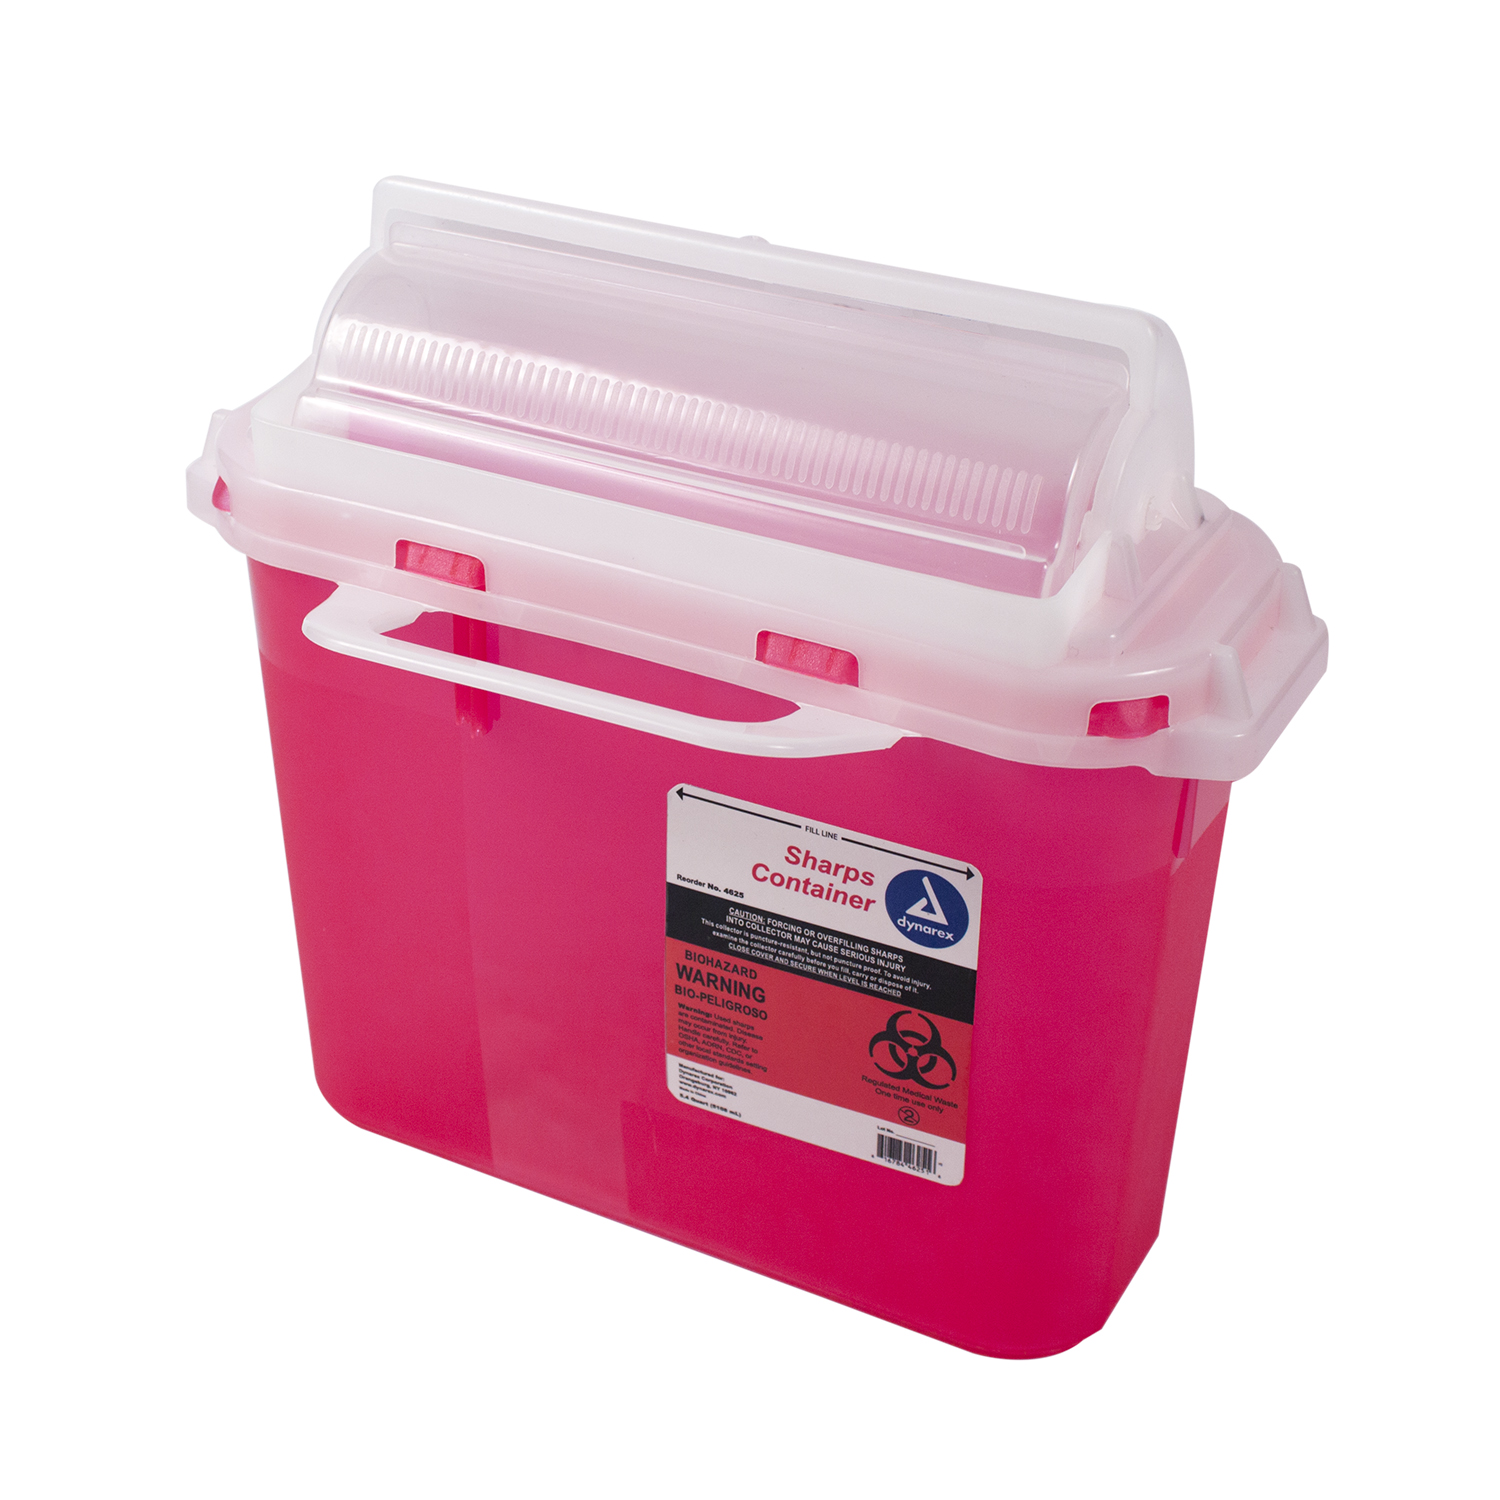 Sharps Containers - 5.4qt.